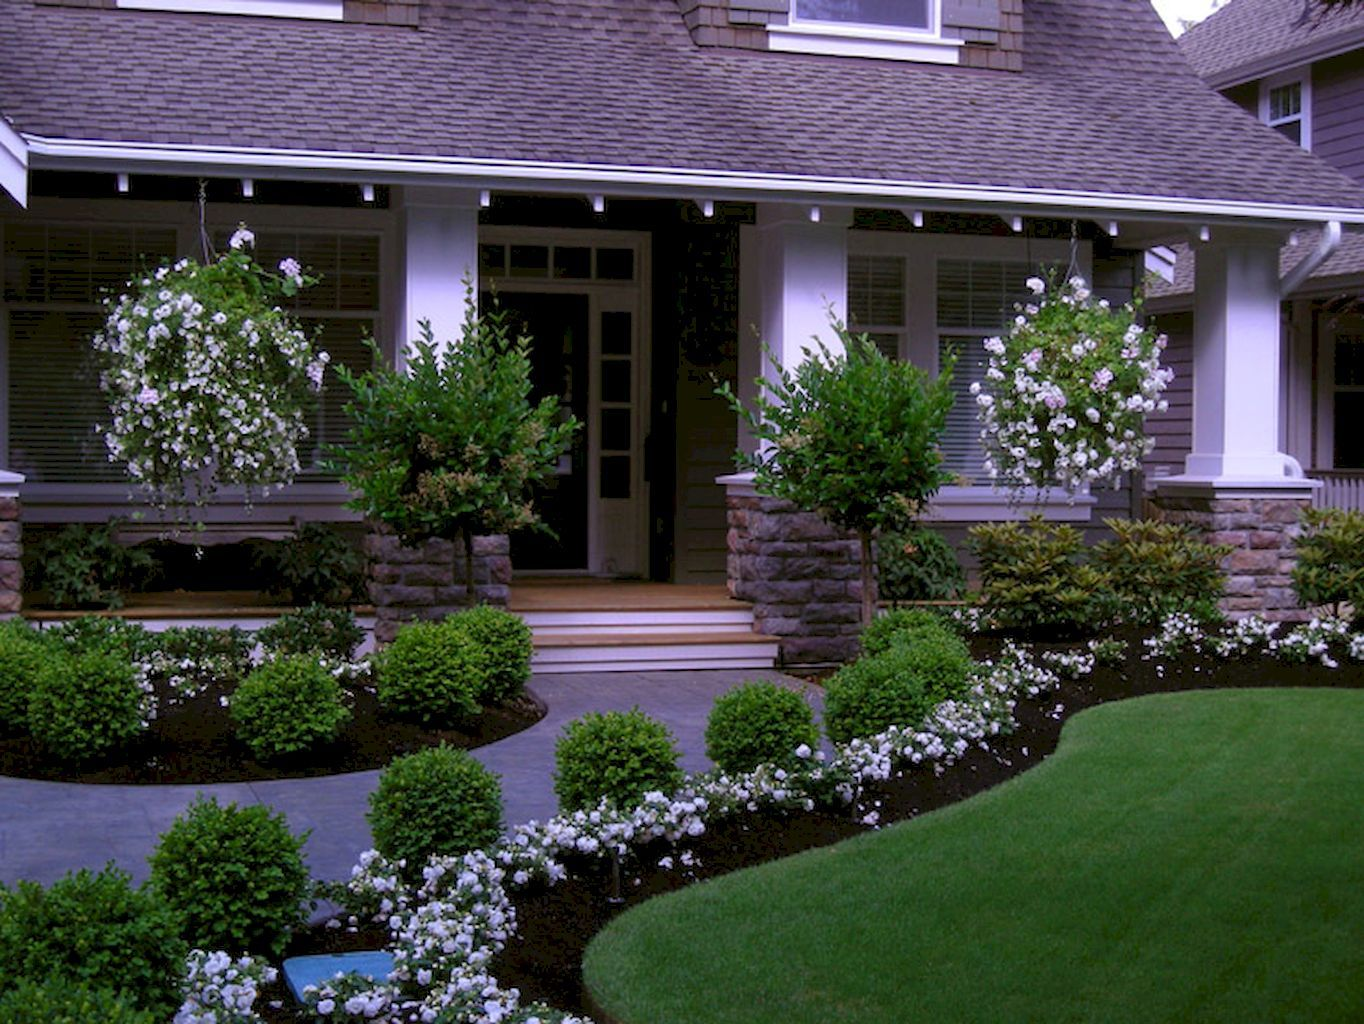 Simple and beautiful front yard landscaping ideas on a - Simple front yard landscaping ideas on a budget ...